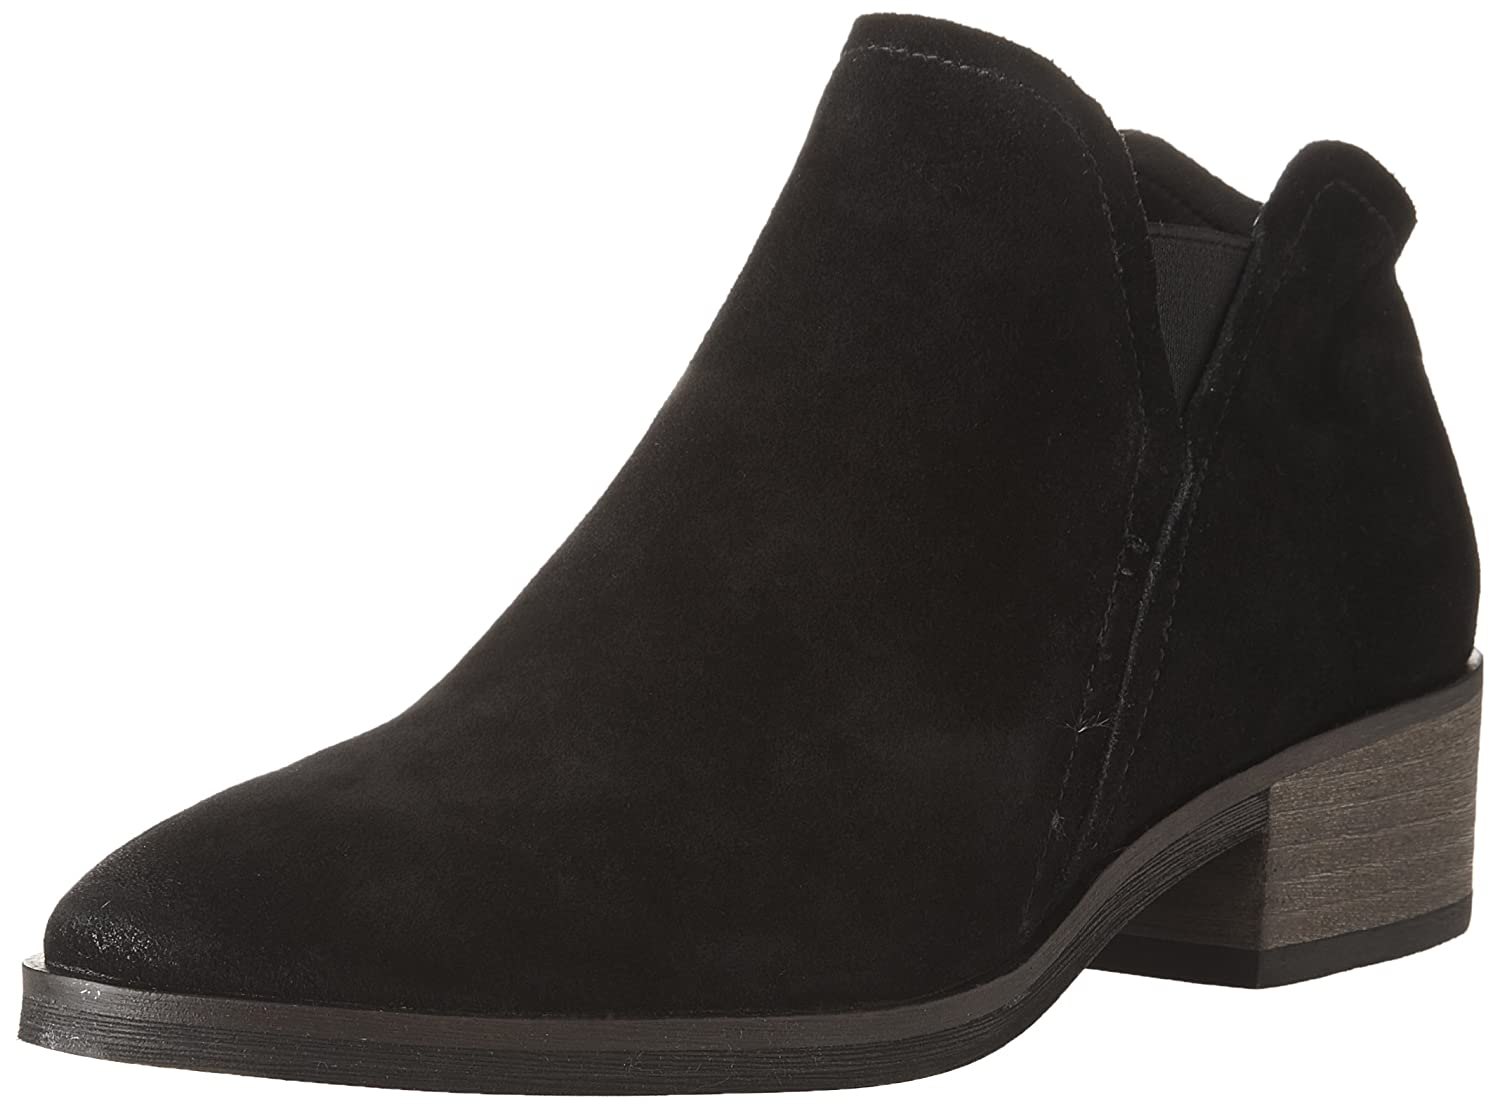 Dolce Vita Women's Tay Ankle Boot B06XKVT19G 6 B(M) US|Onyx Suede